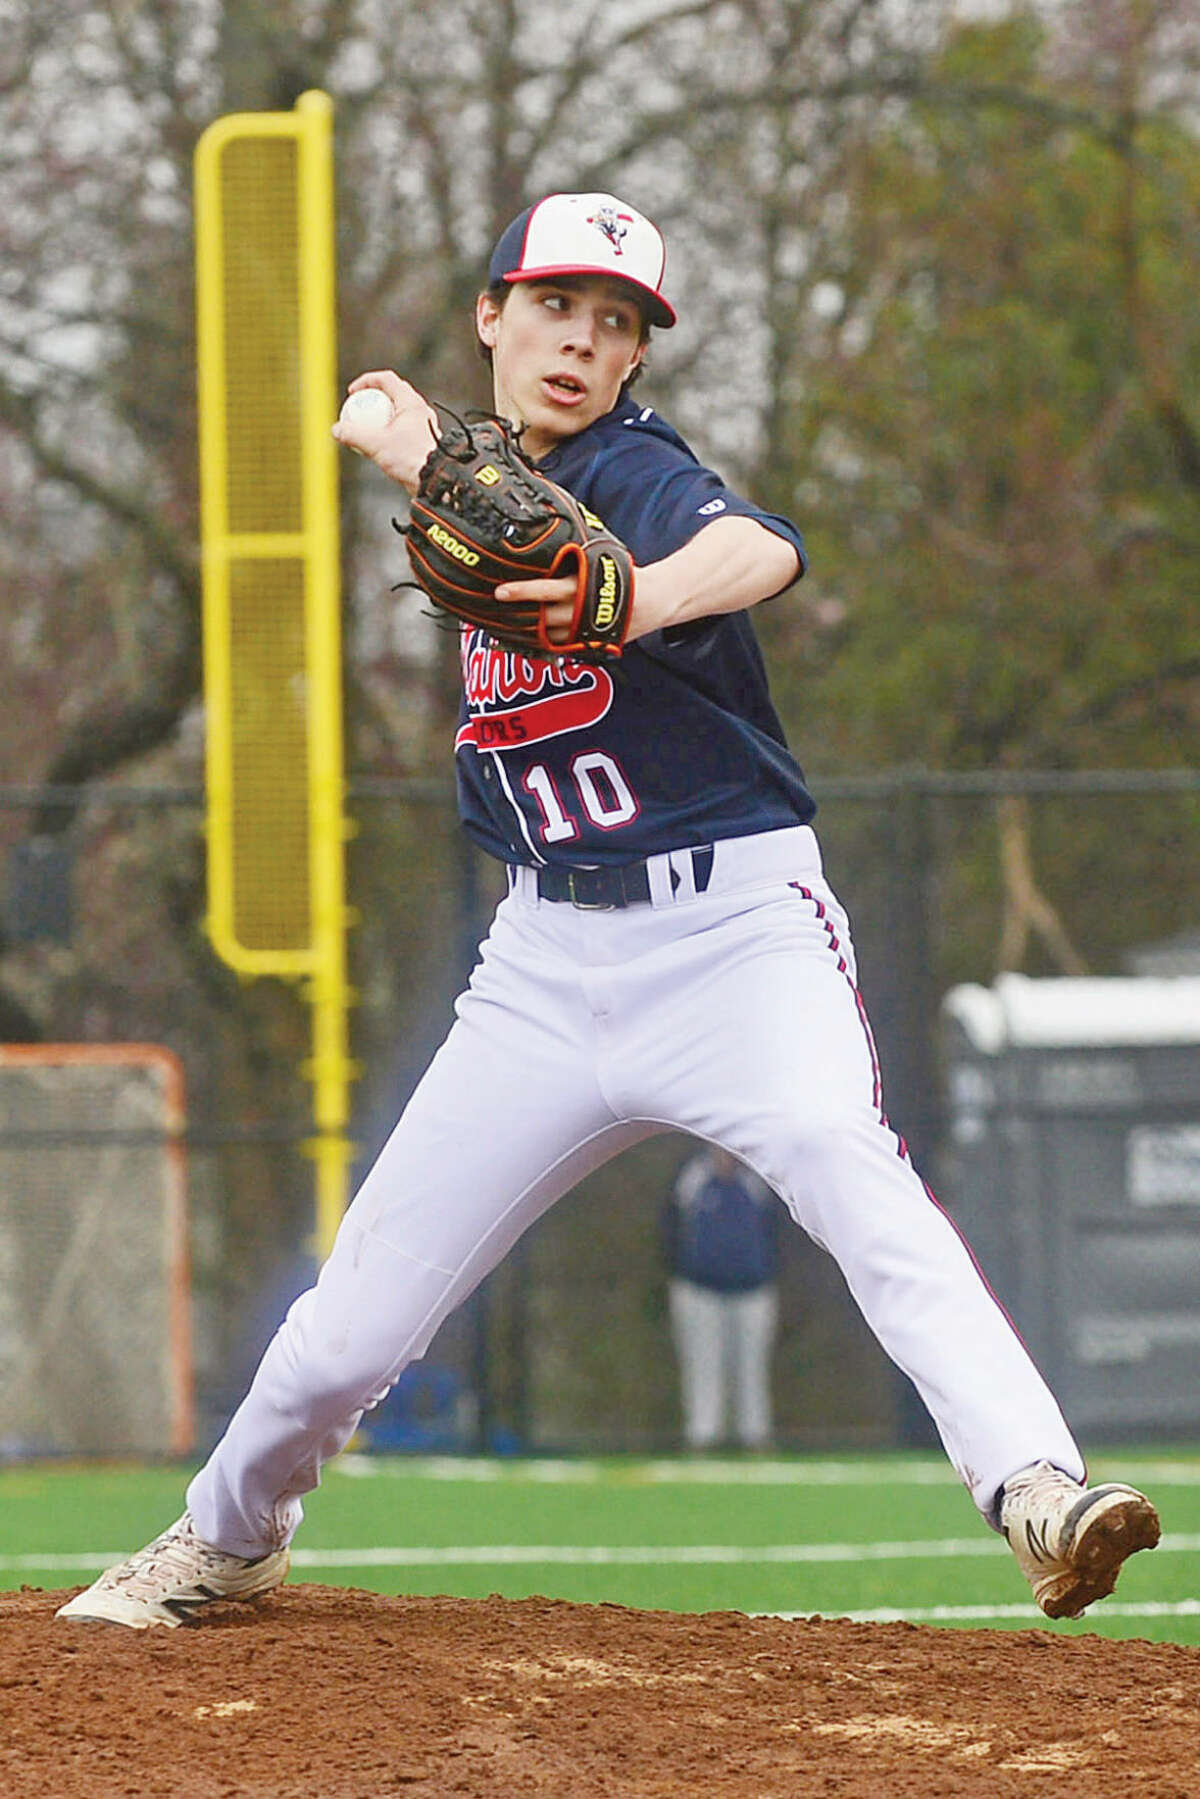 Hour photo / Erik Trautmann Brien McMahon High School' Jeff Vitatoe pitches against Norwalk High School in their game Saturday